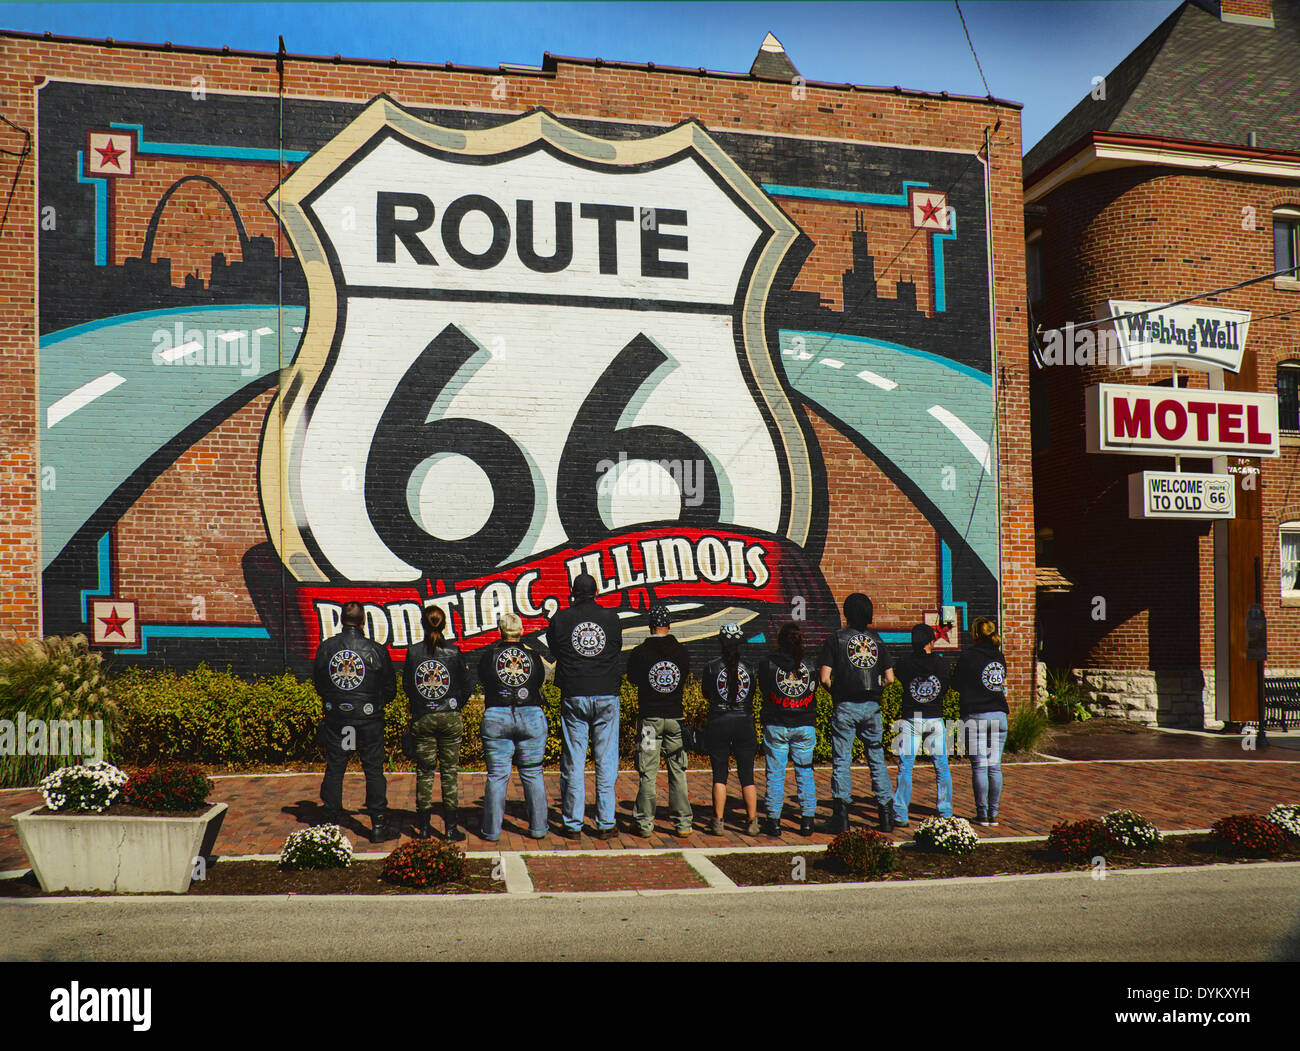 Coyotes malaga motorcycle club viewing the route 66 mural for Route 66 mural